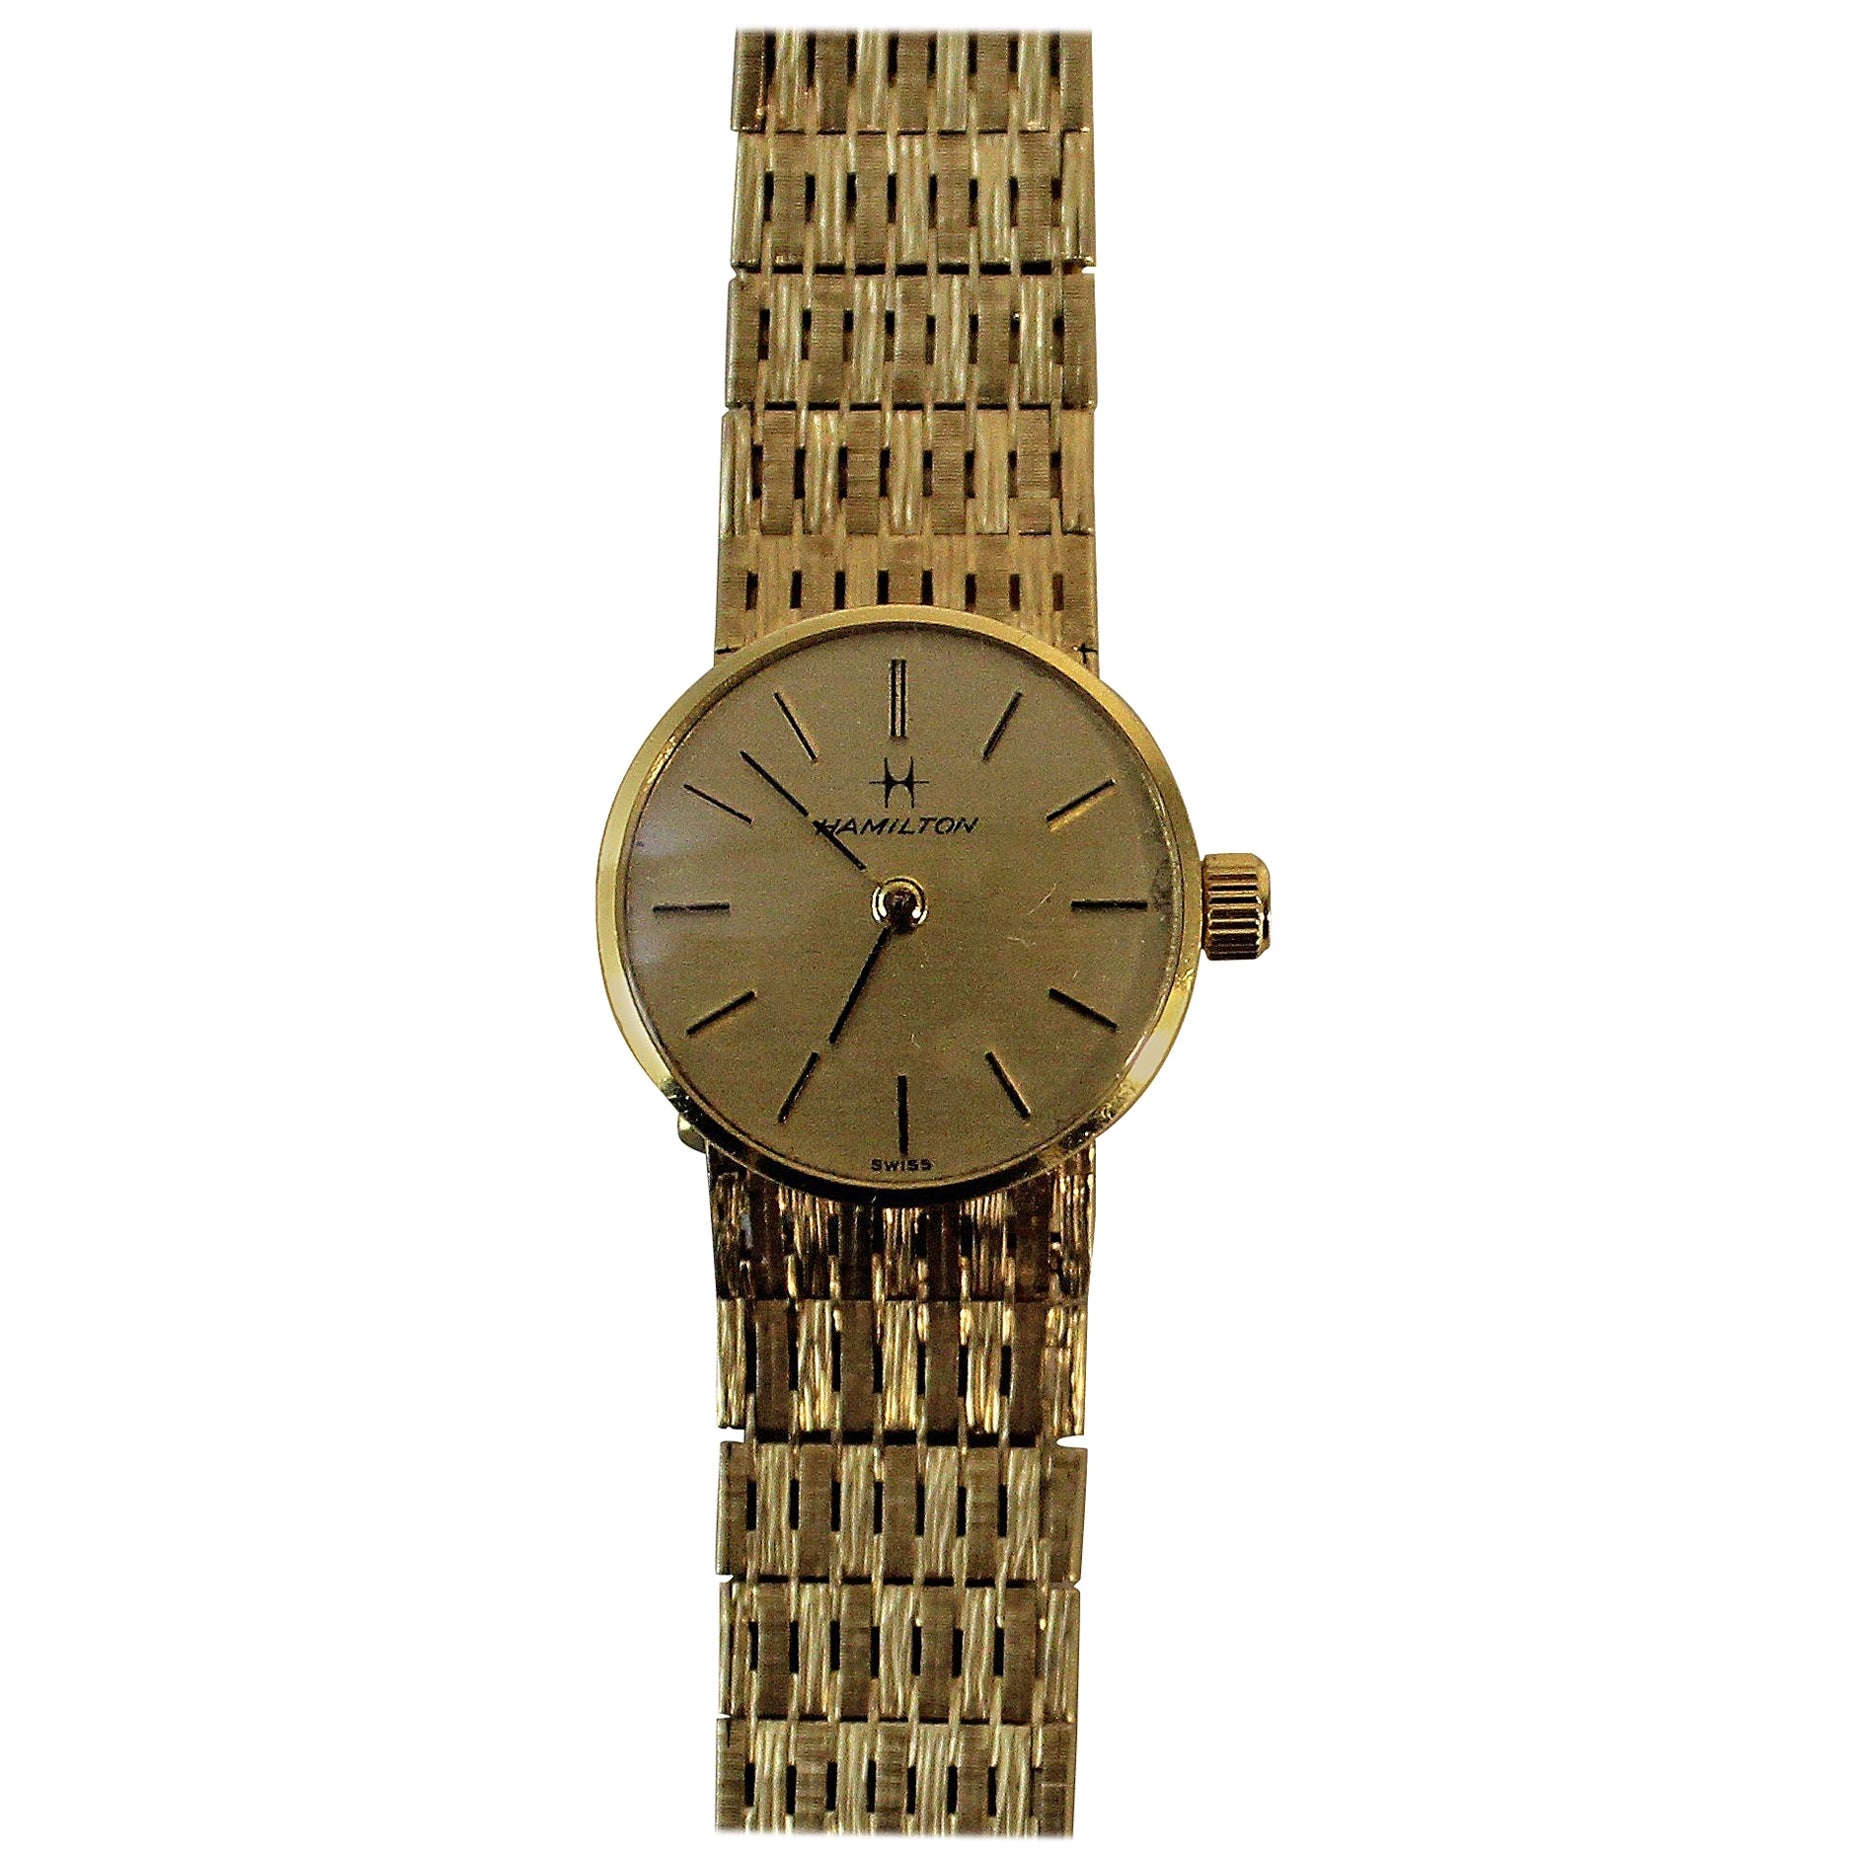 18 Carat Gold Ladies Hamilton Watch